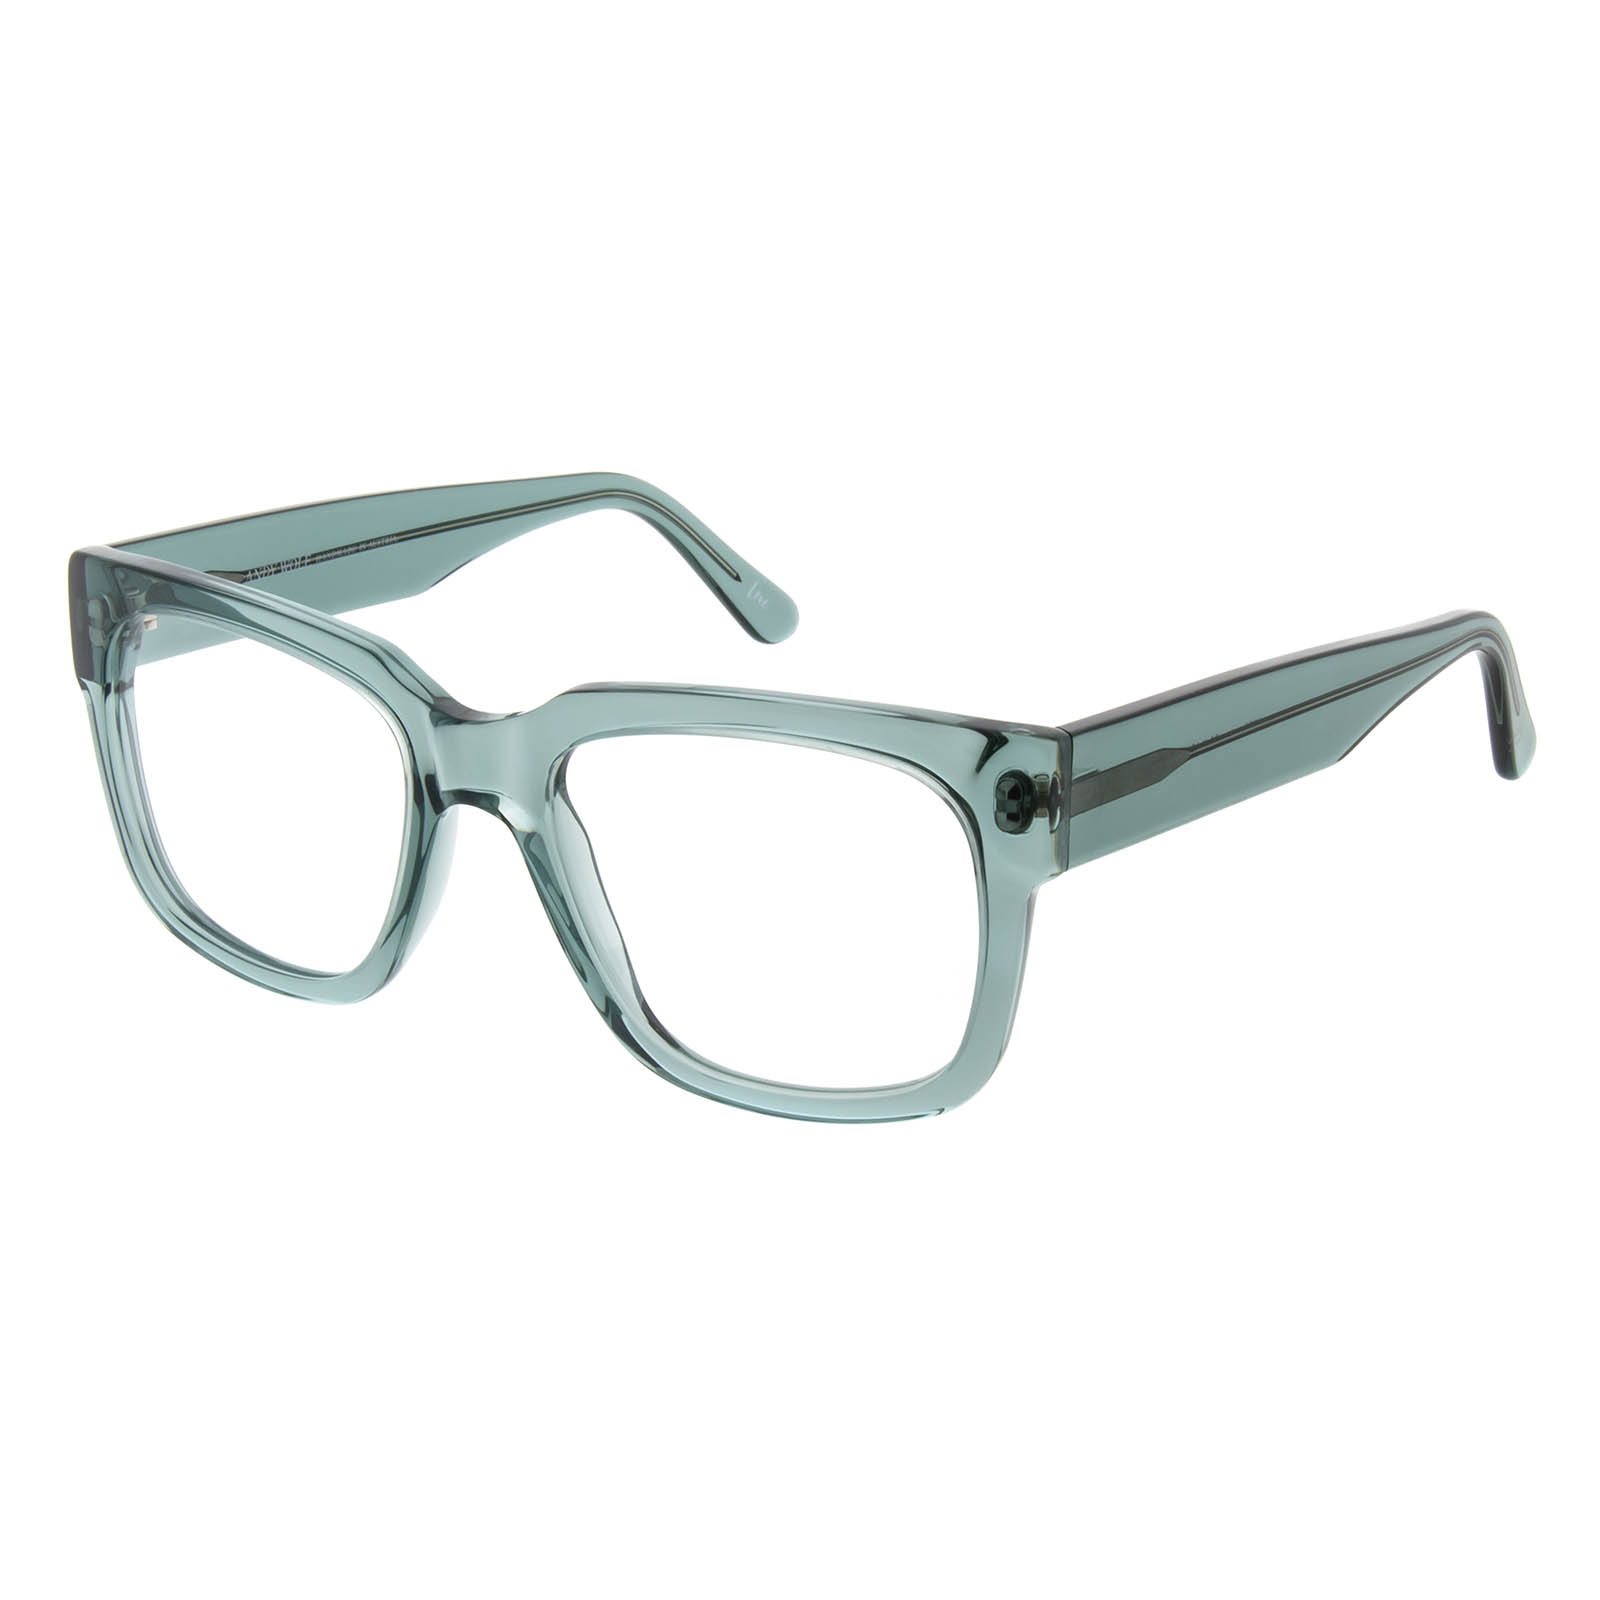 ANDY WOLF EYEWEAR_4579_E_side